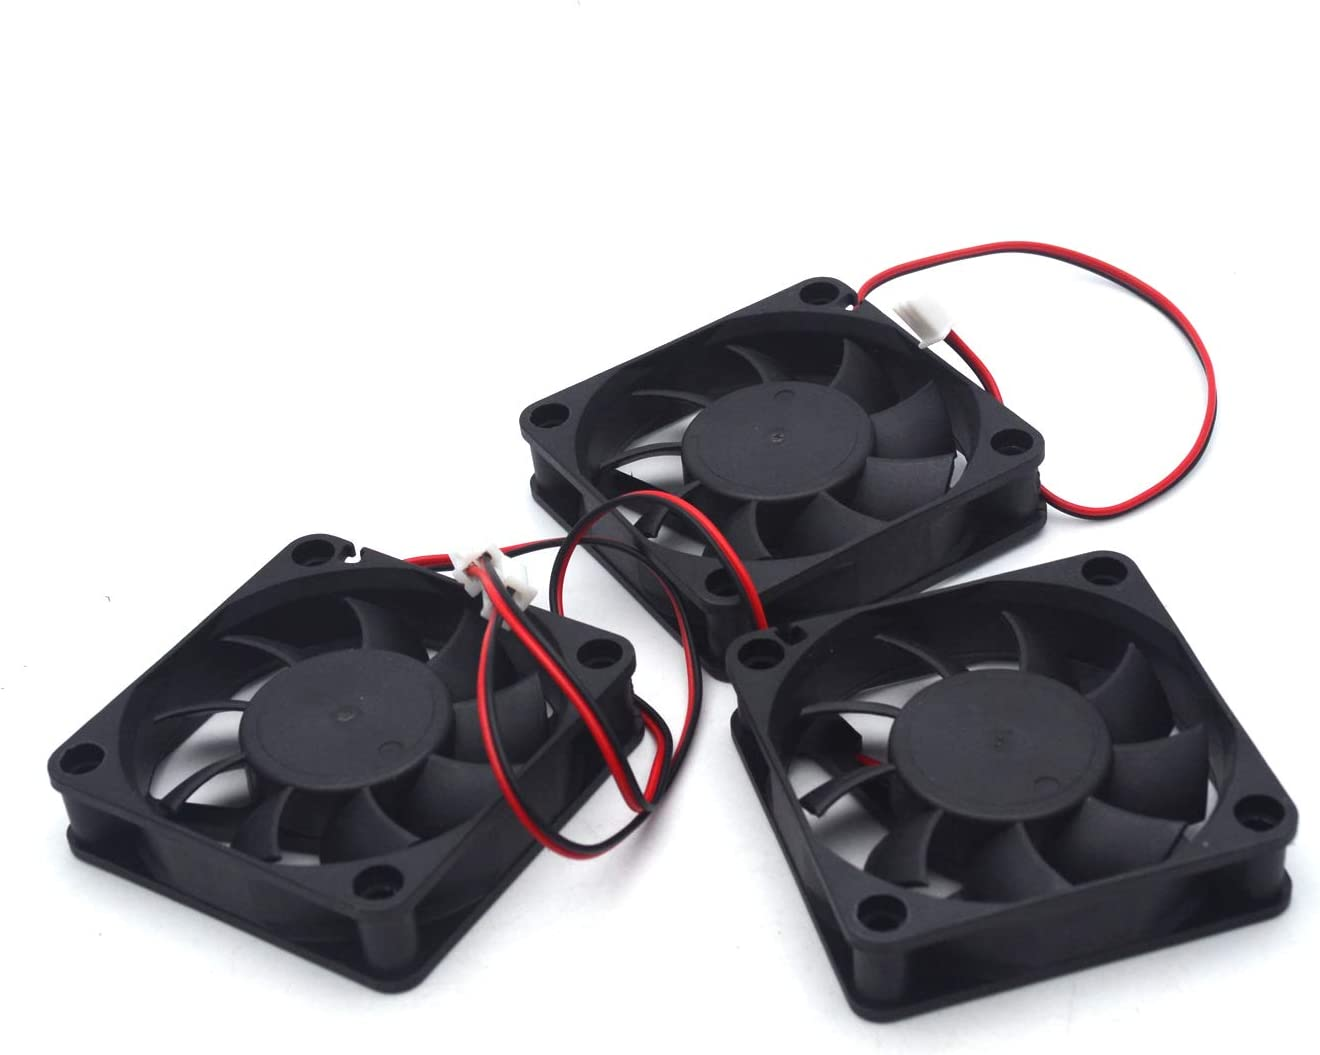 Antrader 3-Pack 60mm x 60mm x 15mm 6015 12V Brushless DC Cooling Fan 2pin for DIY 3D Printer Extruder Humidifier